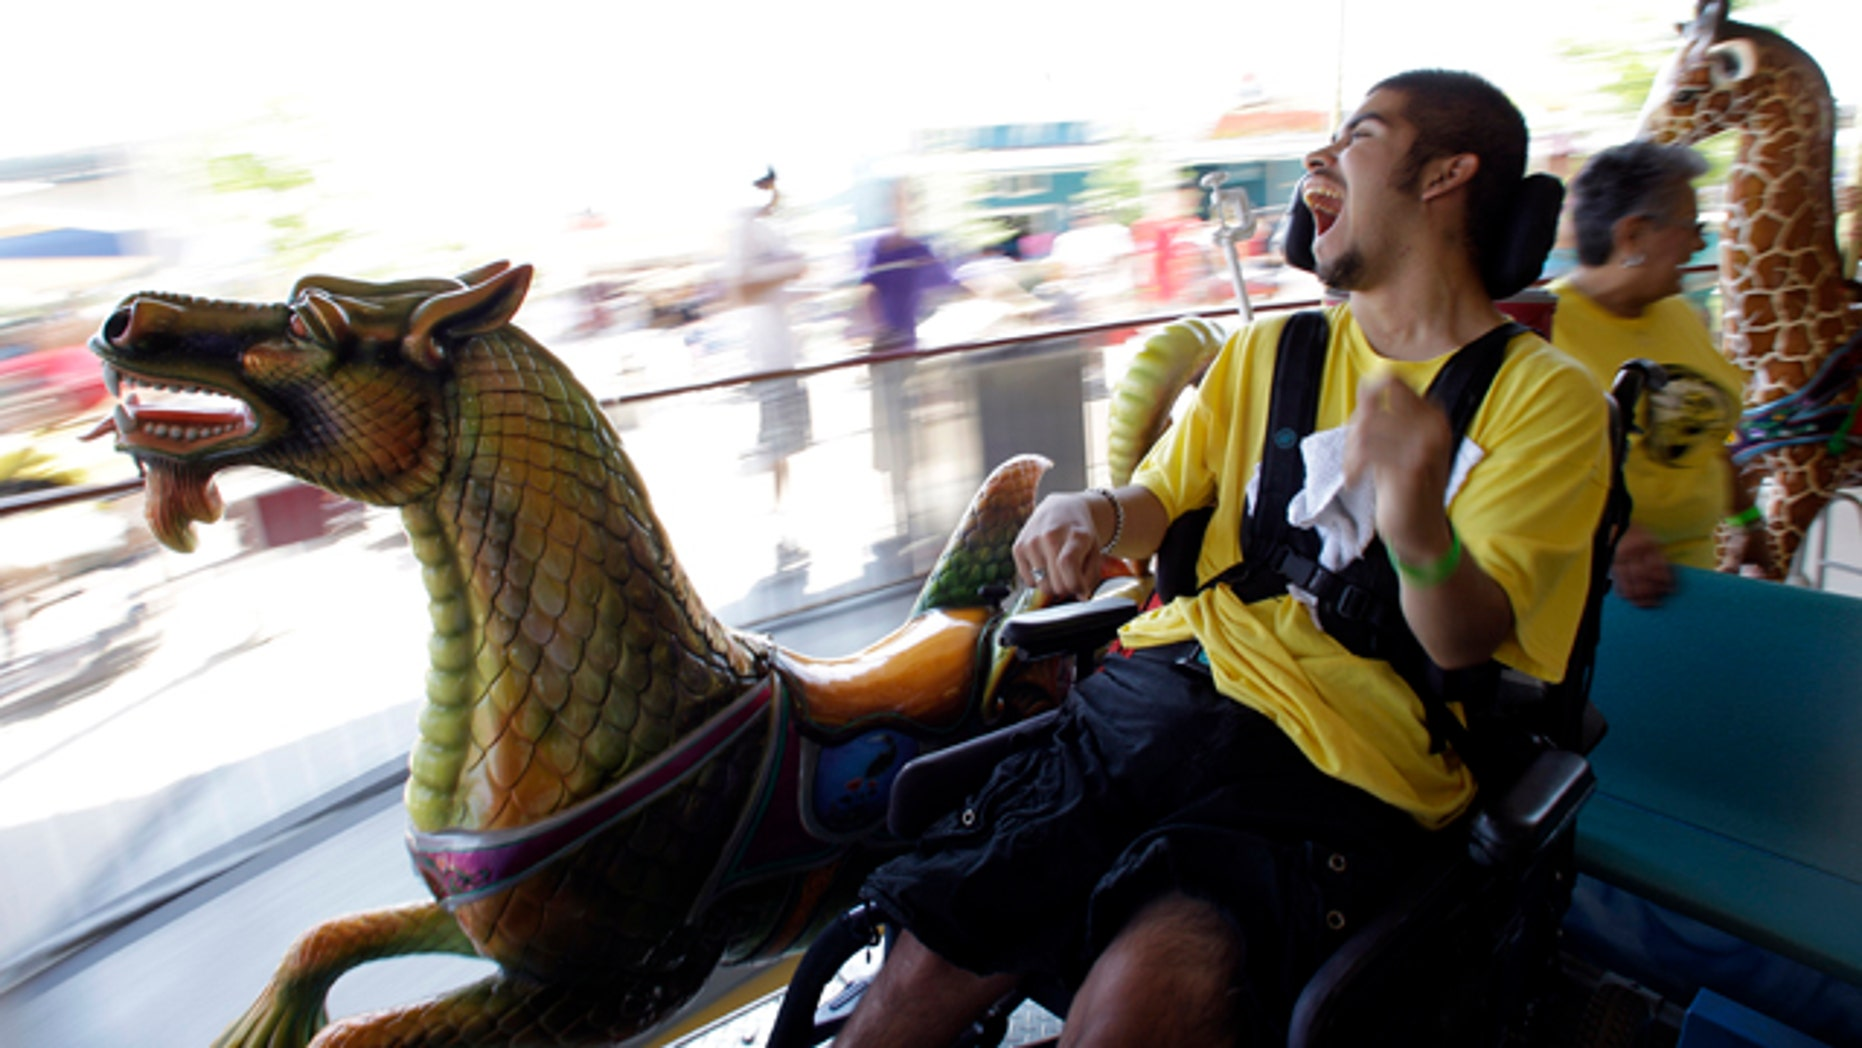 """This Friday, April 29, 2011 photo shows Fabian Mendoza as he rides a carousel at Morgan's Wonderland in San Antonio, Texas. The carousel allows children and adults of different abilities to experience a merry-go-round.   The 25-acre, $34 million park caters every detail to people with physical or mental disabilities, down to jungle gyms wide enough to fit two wheelchairs side-by-side, a """"Sensory Village"""" thats an indoor mall of touch-and-hear activities, and daily attendance limits so the park never gets too loud or lines too long.   (AP Photo/Eric Gay)"""